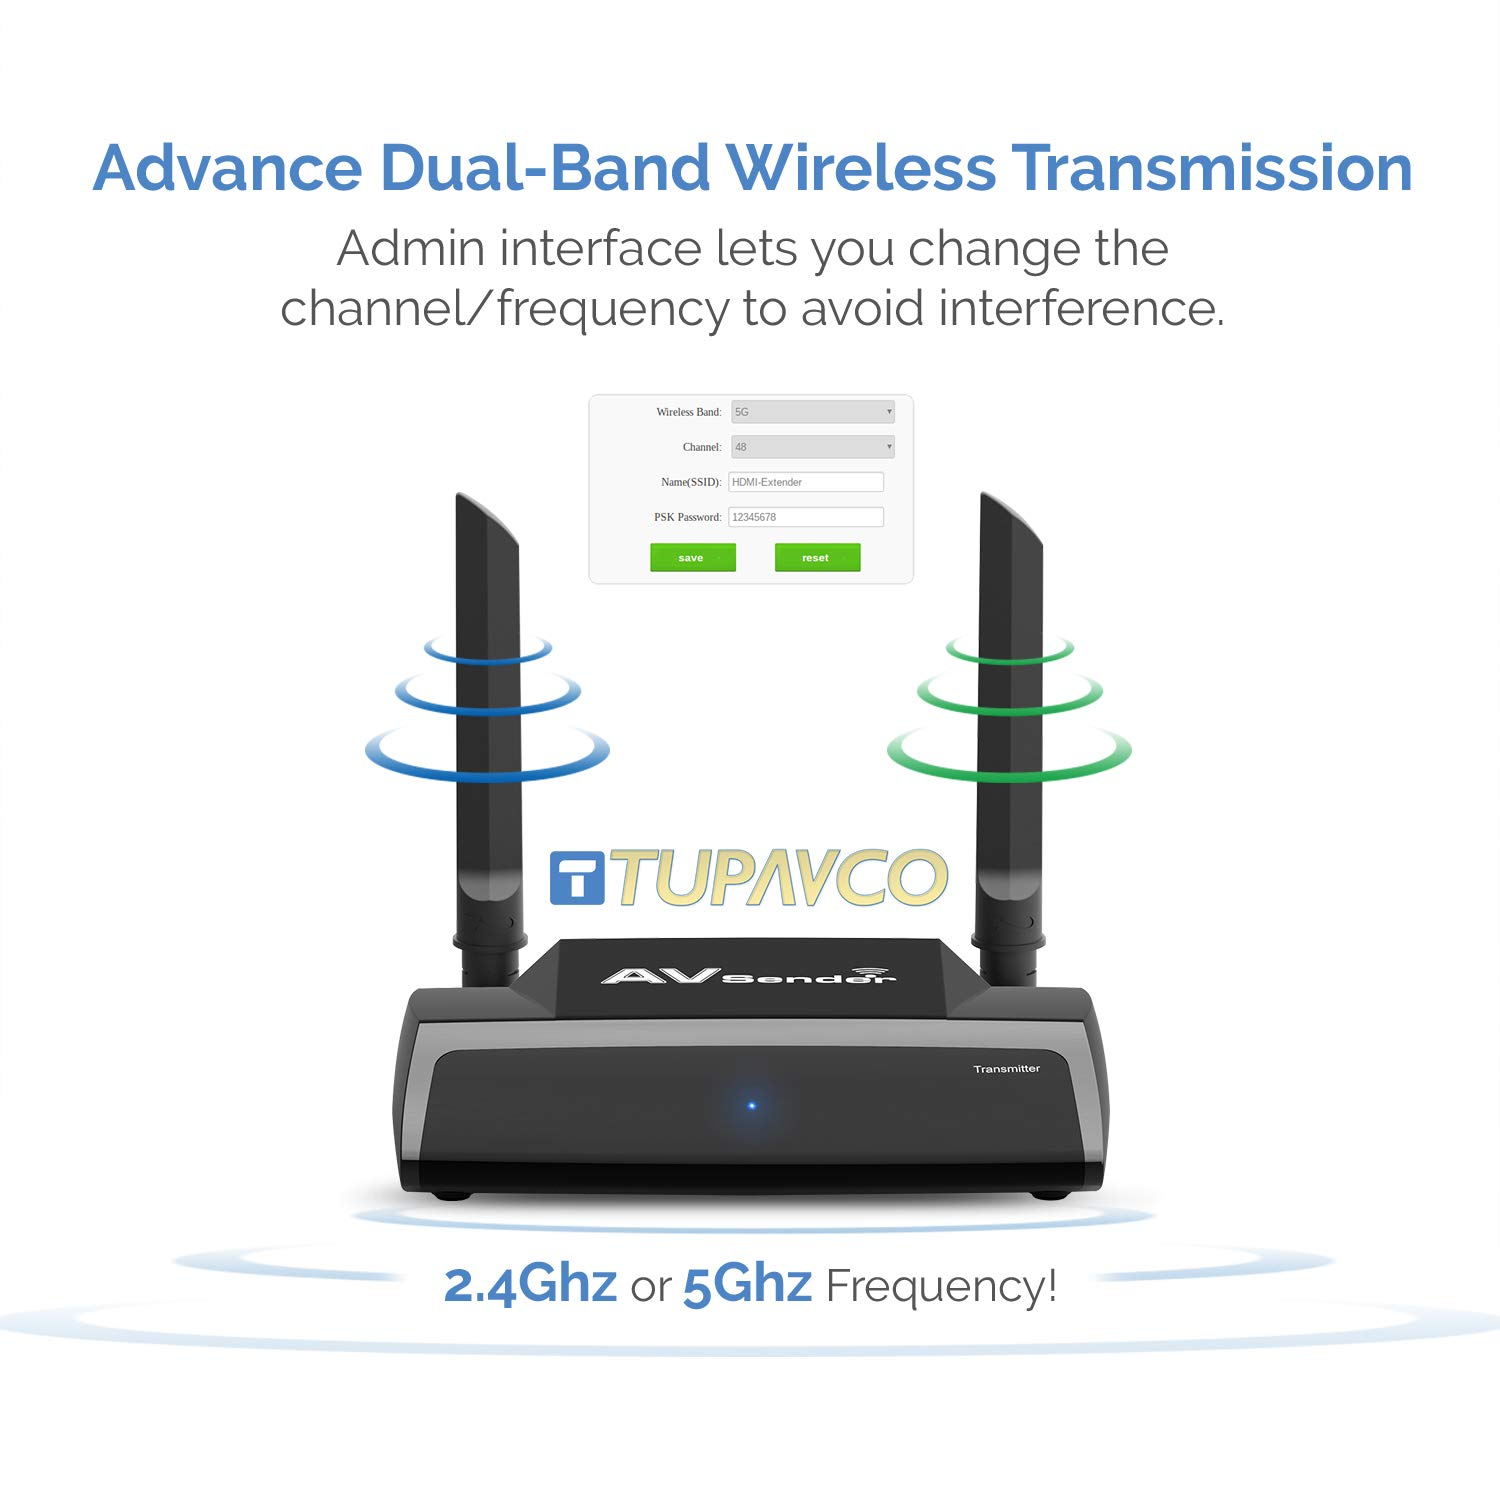 Wireless HDMI Transmitter and Receiver -TRM245 HD Extender Kit -2.4/5GHz Sender Isolated WiFi -1080P Video/Audio/IR Remote Signal Range Extension for Cable Box/Computer/PC-Projector/Monitor/TV Display by Tupavco (Image #4)